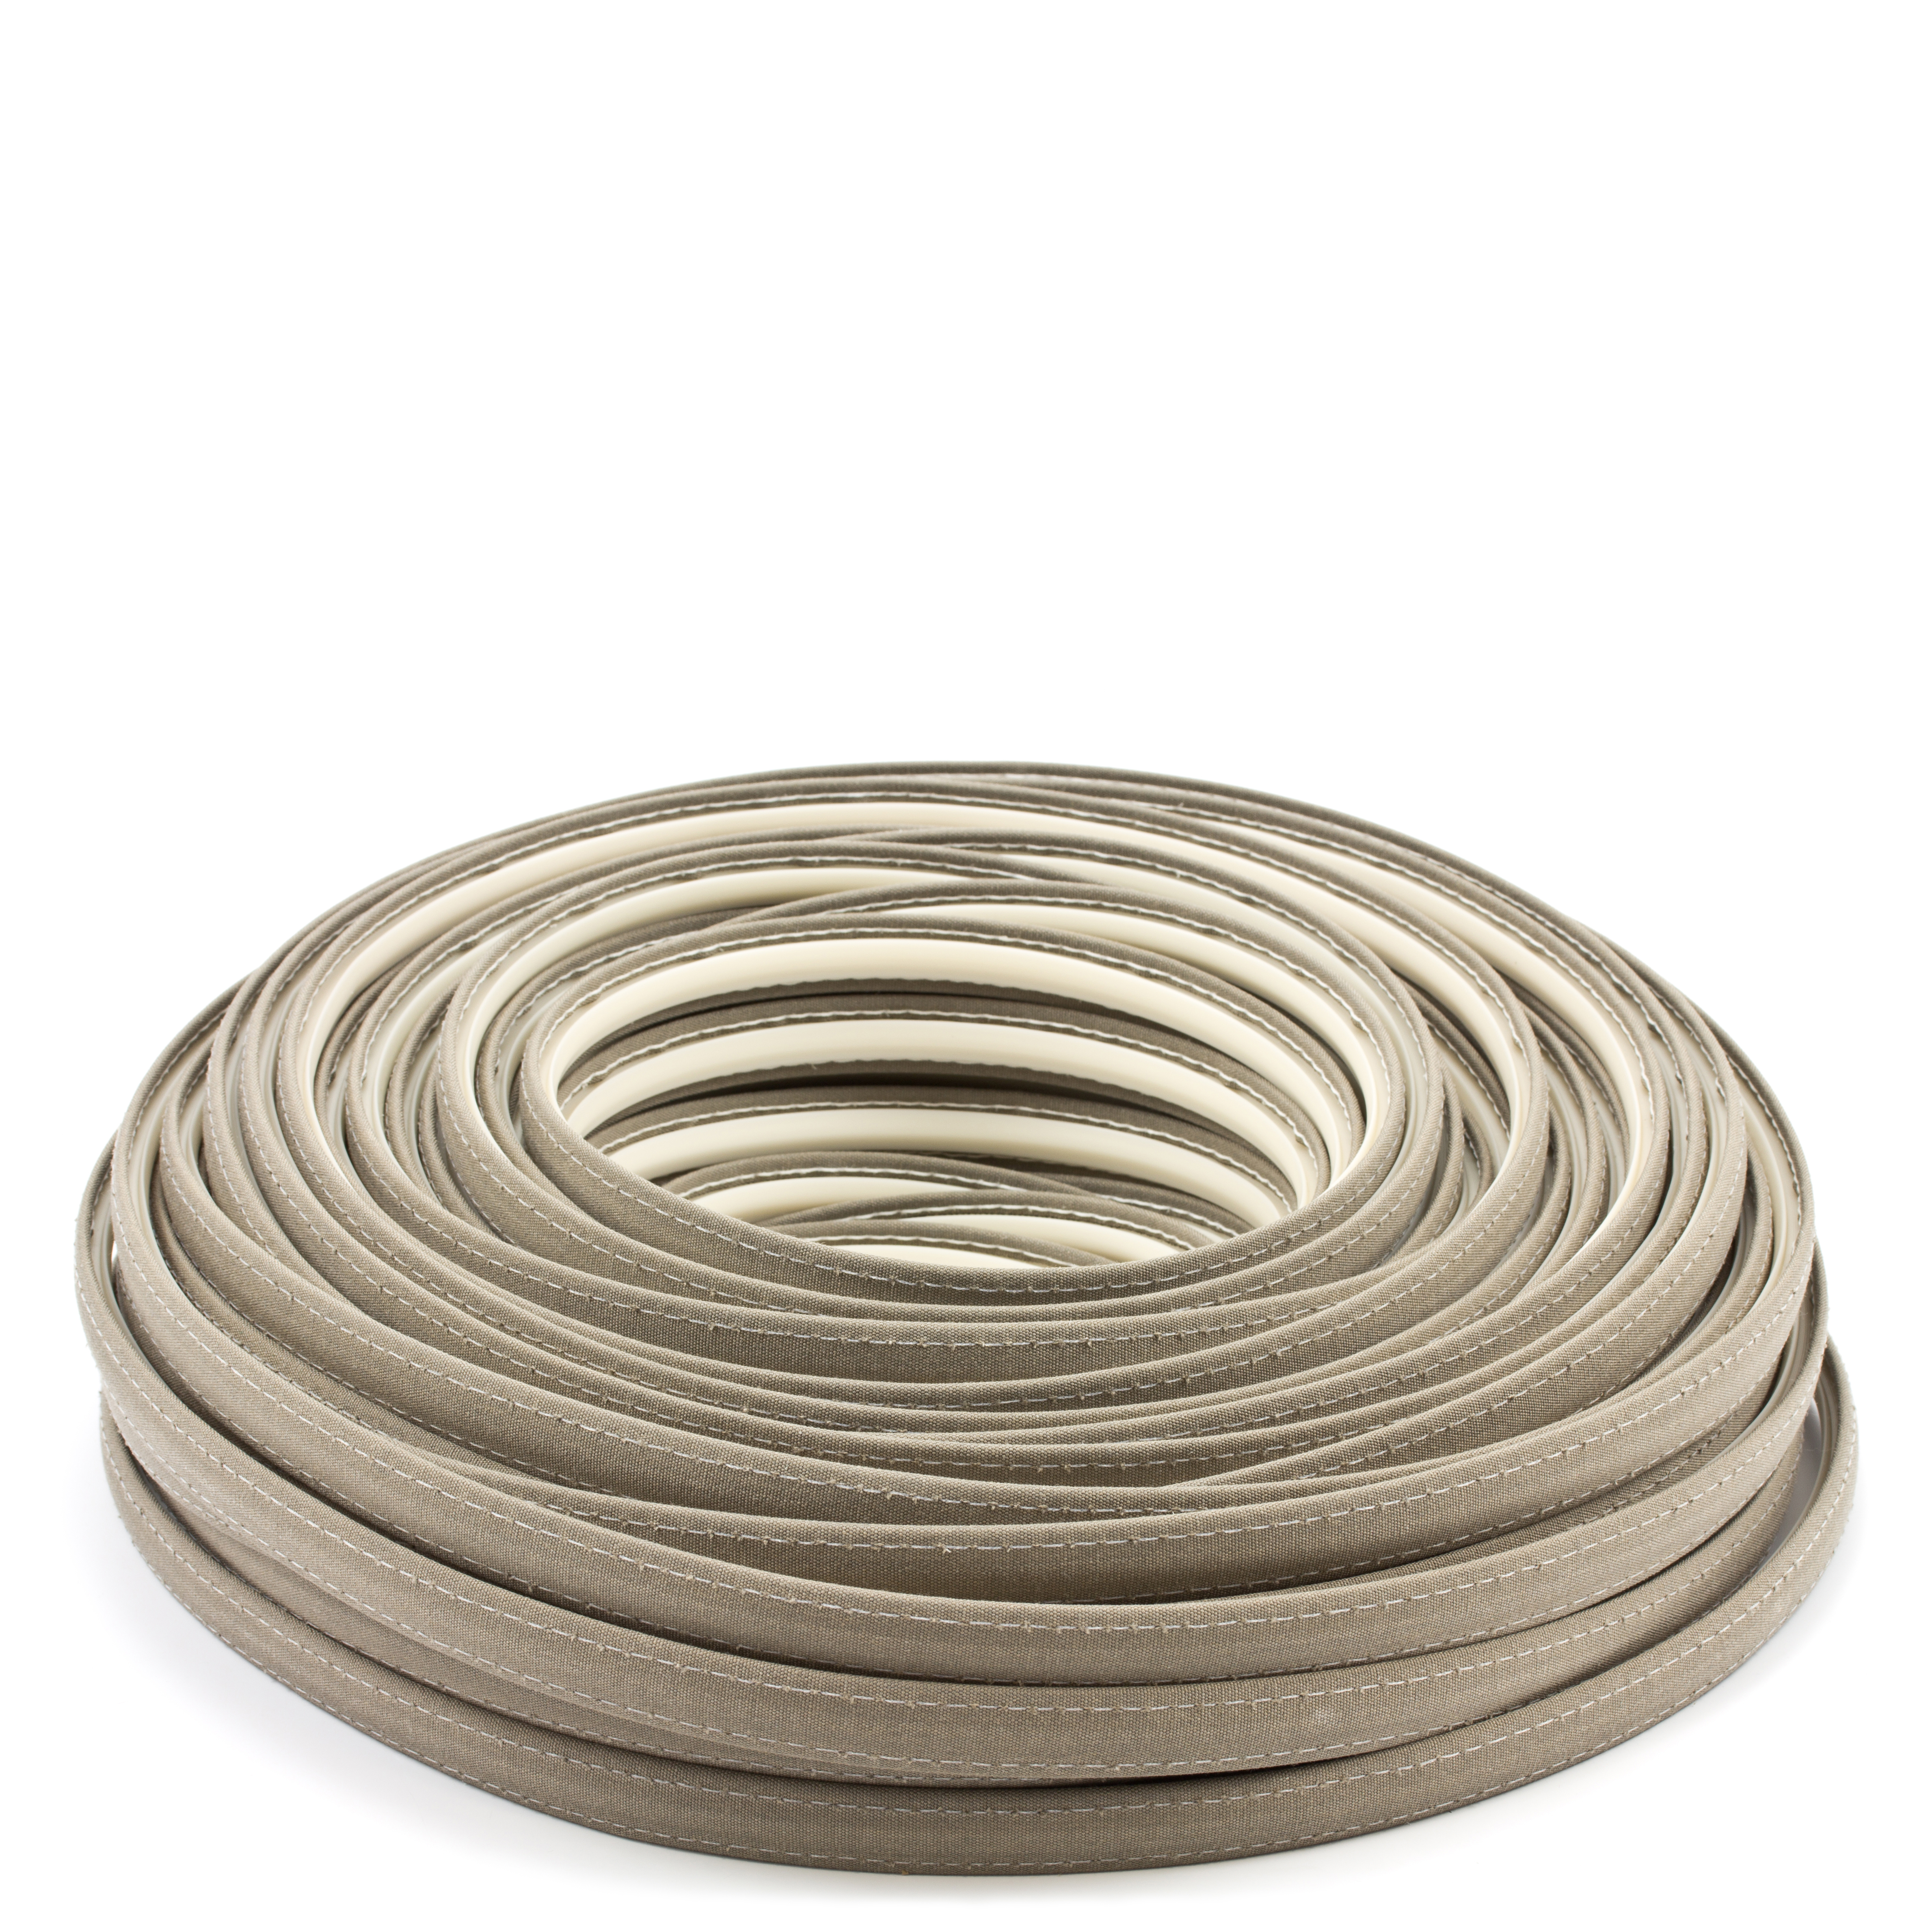 Thumbnail Steel Stitch Sunbrella Covered ZipStrip with Tenara Thread #4648 Taupe 160' Full Rolls Only 1